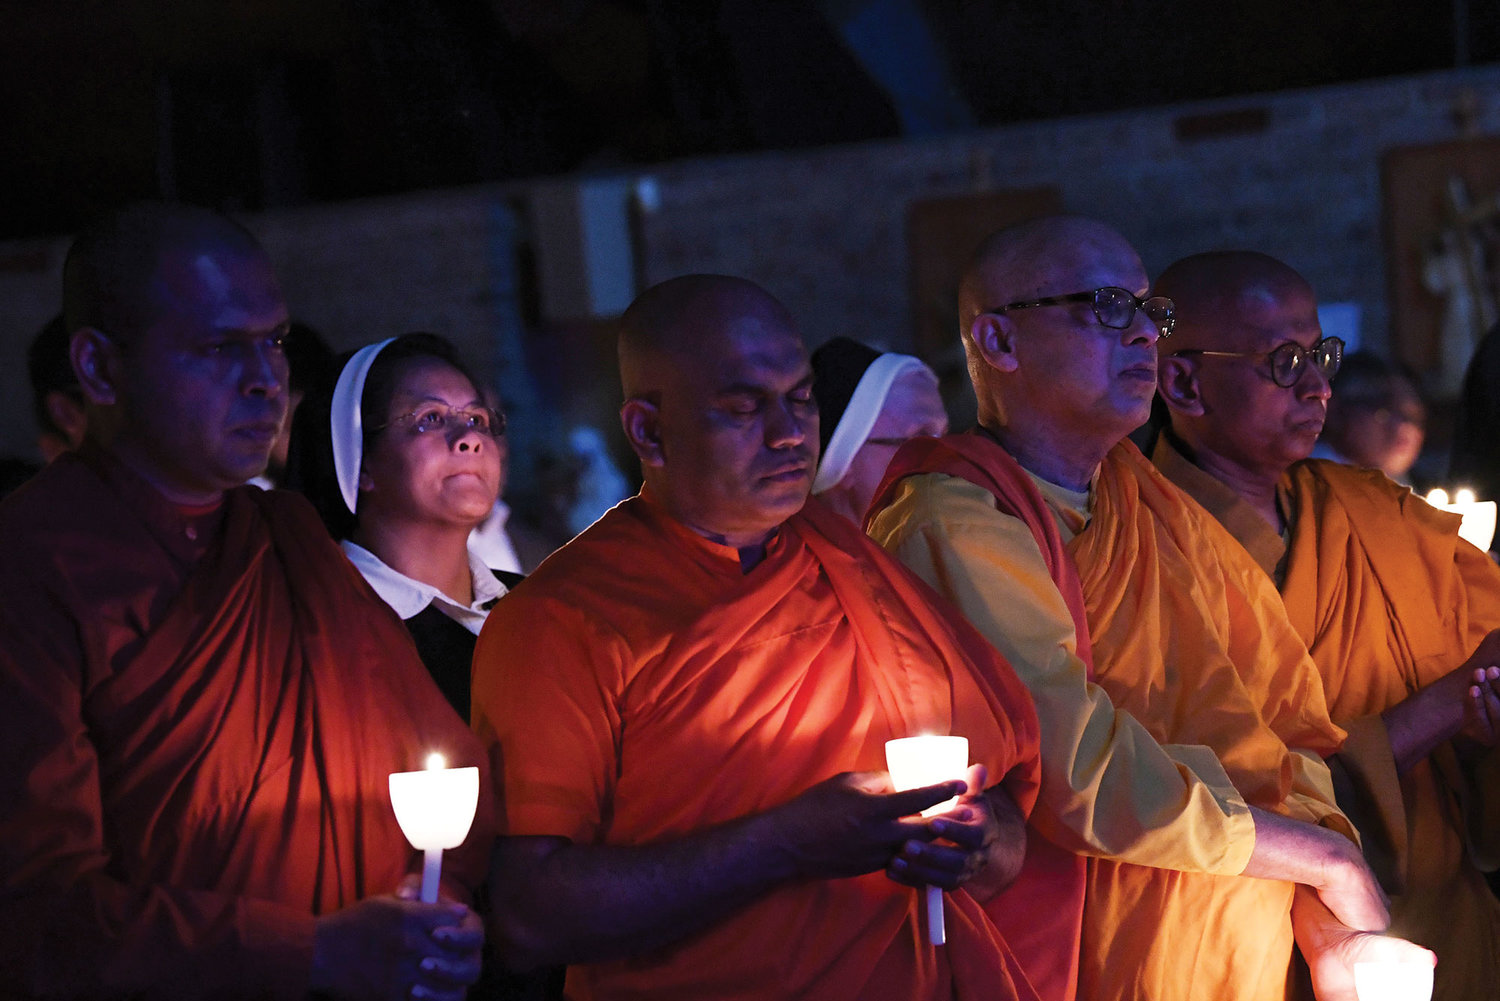 Religious sisters and Buddhist monks participate in a candlelight prayer ceremony at the end of the Mass offered May 12 at St. Adalbert Church on Staten Island in memory of the victims of the Easter Sunday bombings in Sri Lanka.